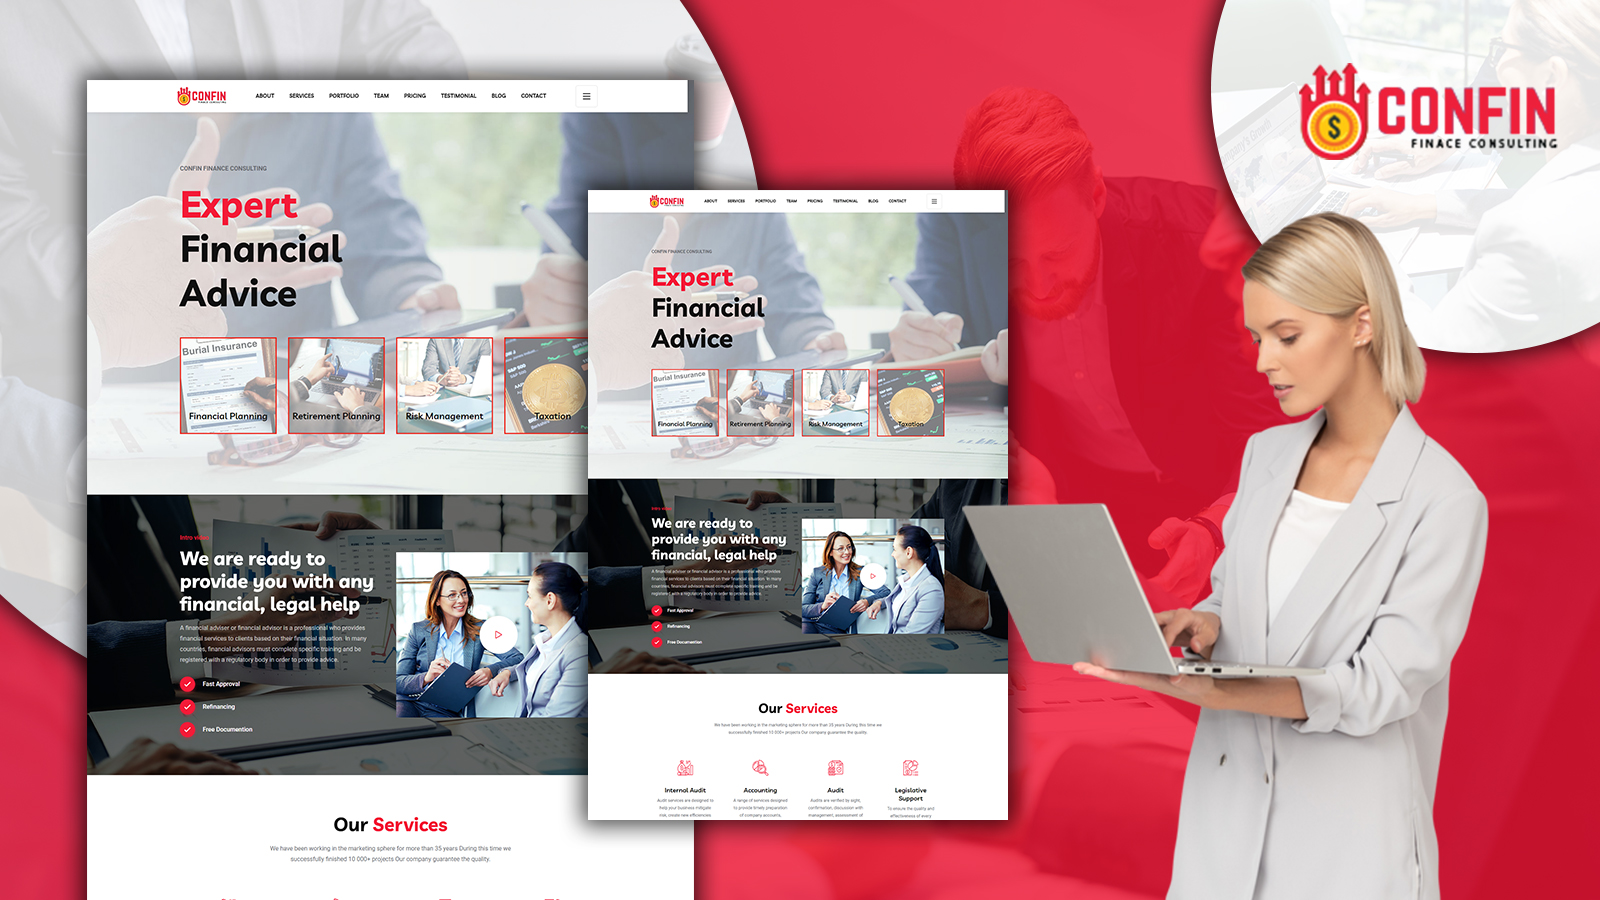 Confin - Financial Services HTML5 Landing Page Template